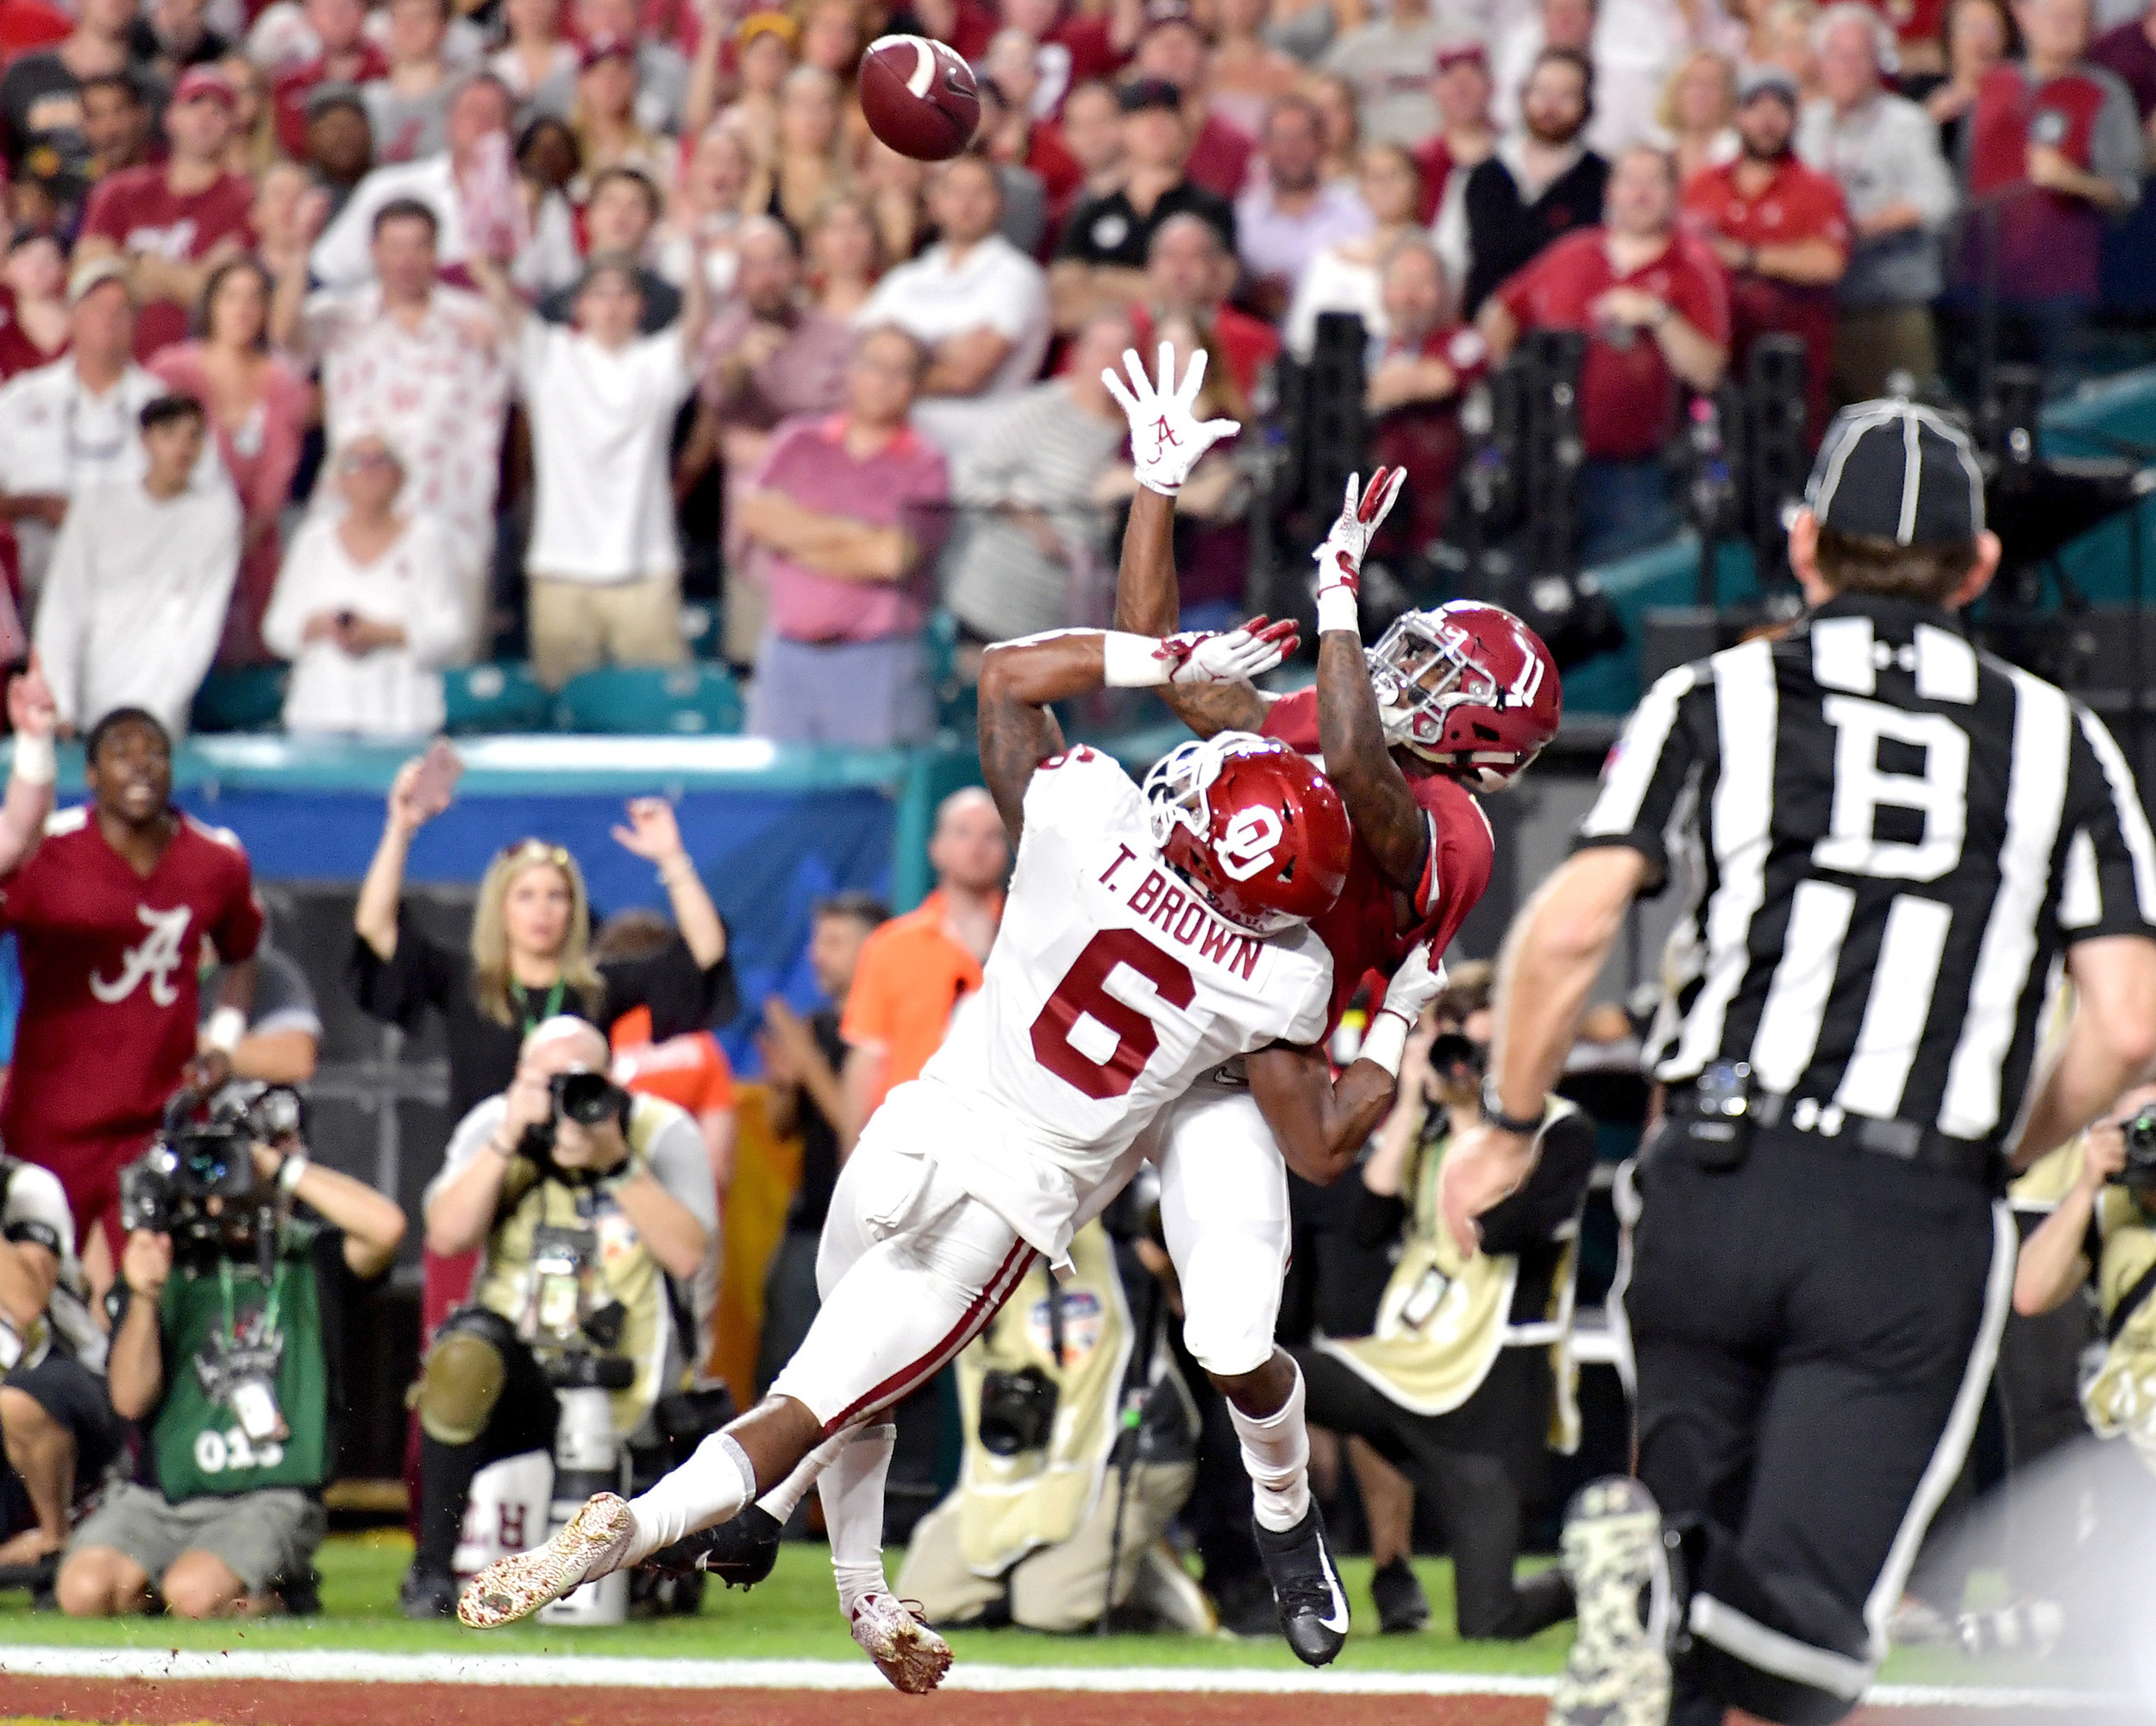 Alabama Crimson Tide wide receiver Henry Ruggs III (11) with a touchdown catch in the first half of the Capital One Orange Bowl, featuring Alabama and the Oklahoma Sooners, at Hard Rock Stadium in Miami Gardens, Fla., Saturday, Dec. 29, 2018. Alabama wins 45-34. (Photo by Lee Walls)